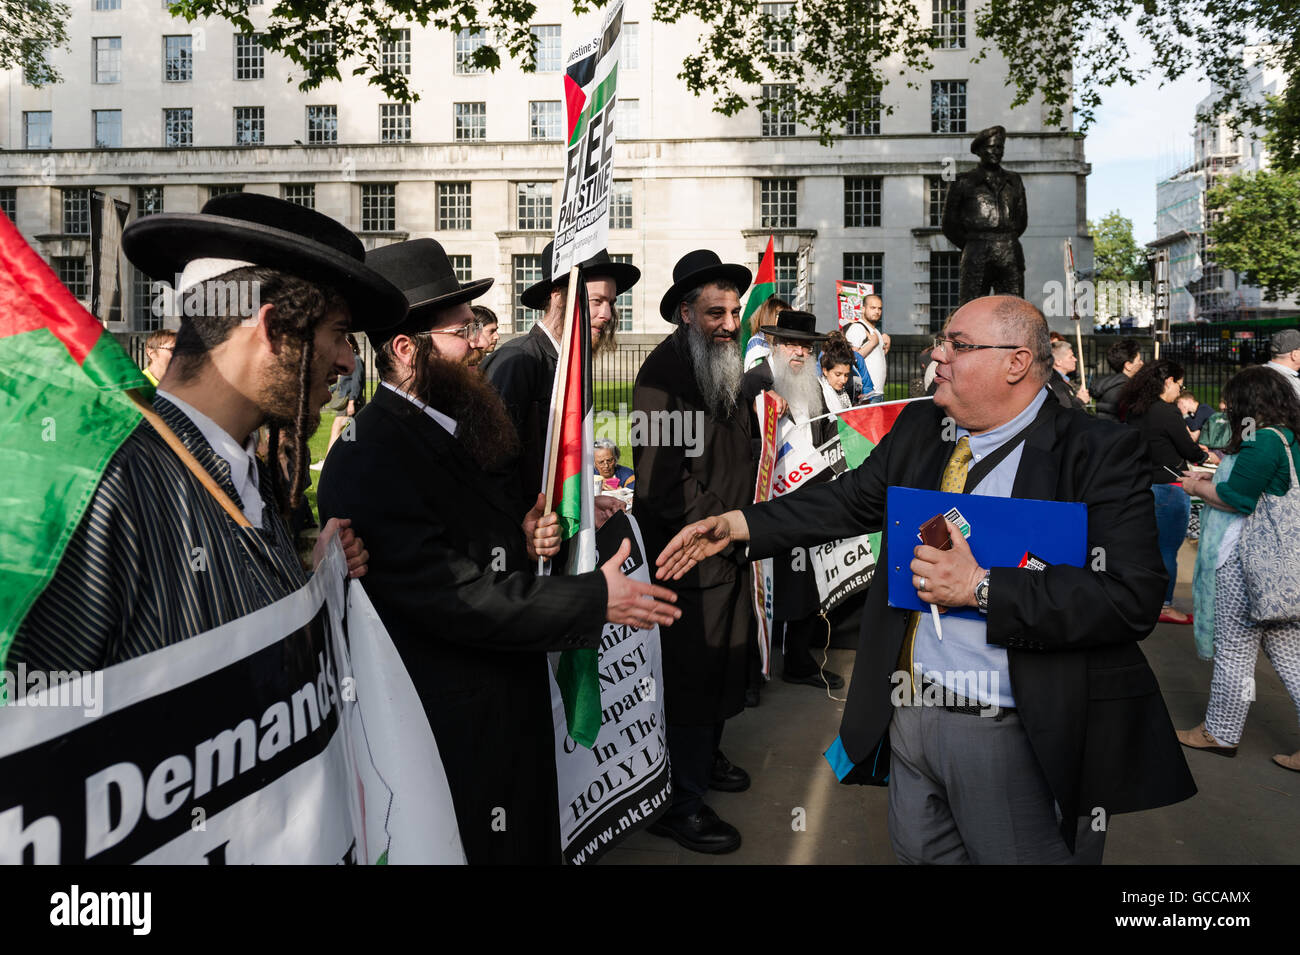 London, UK. 8th July 2016. Kamal Hawwash from the Palestine Solidarity Campaign shake hands with a group of  Orthodox - Stock Image